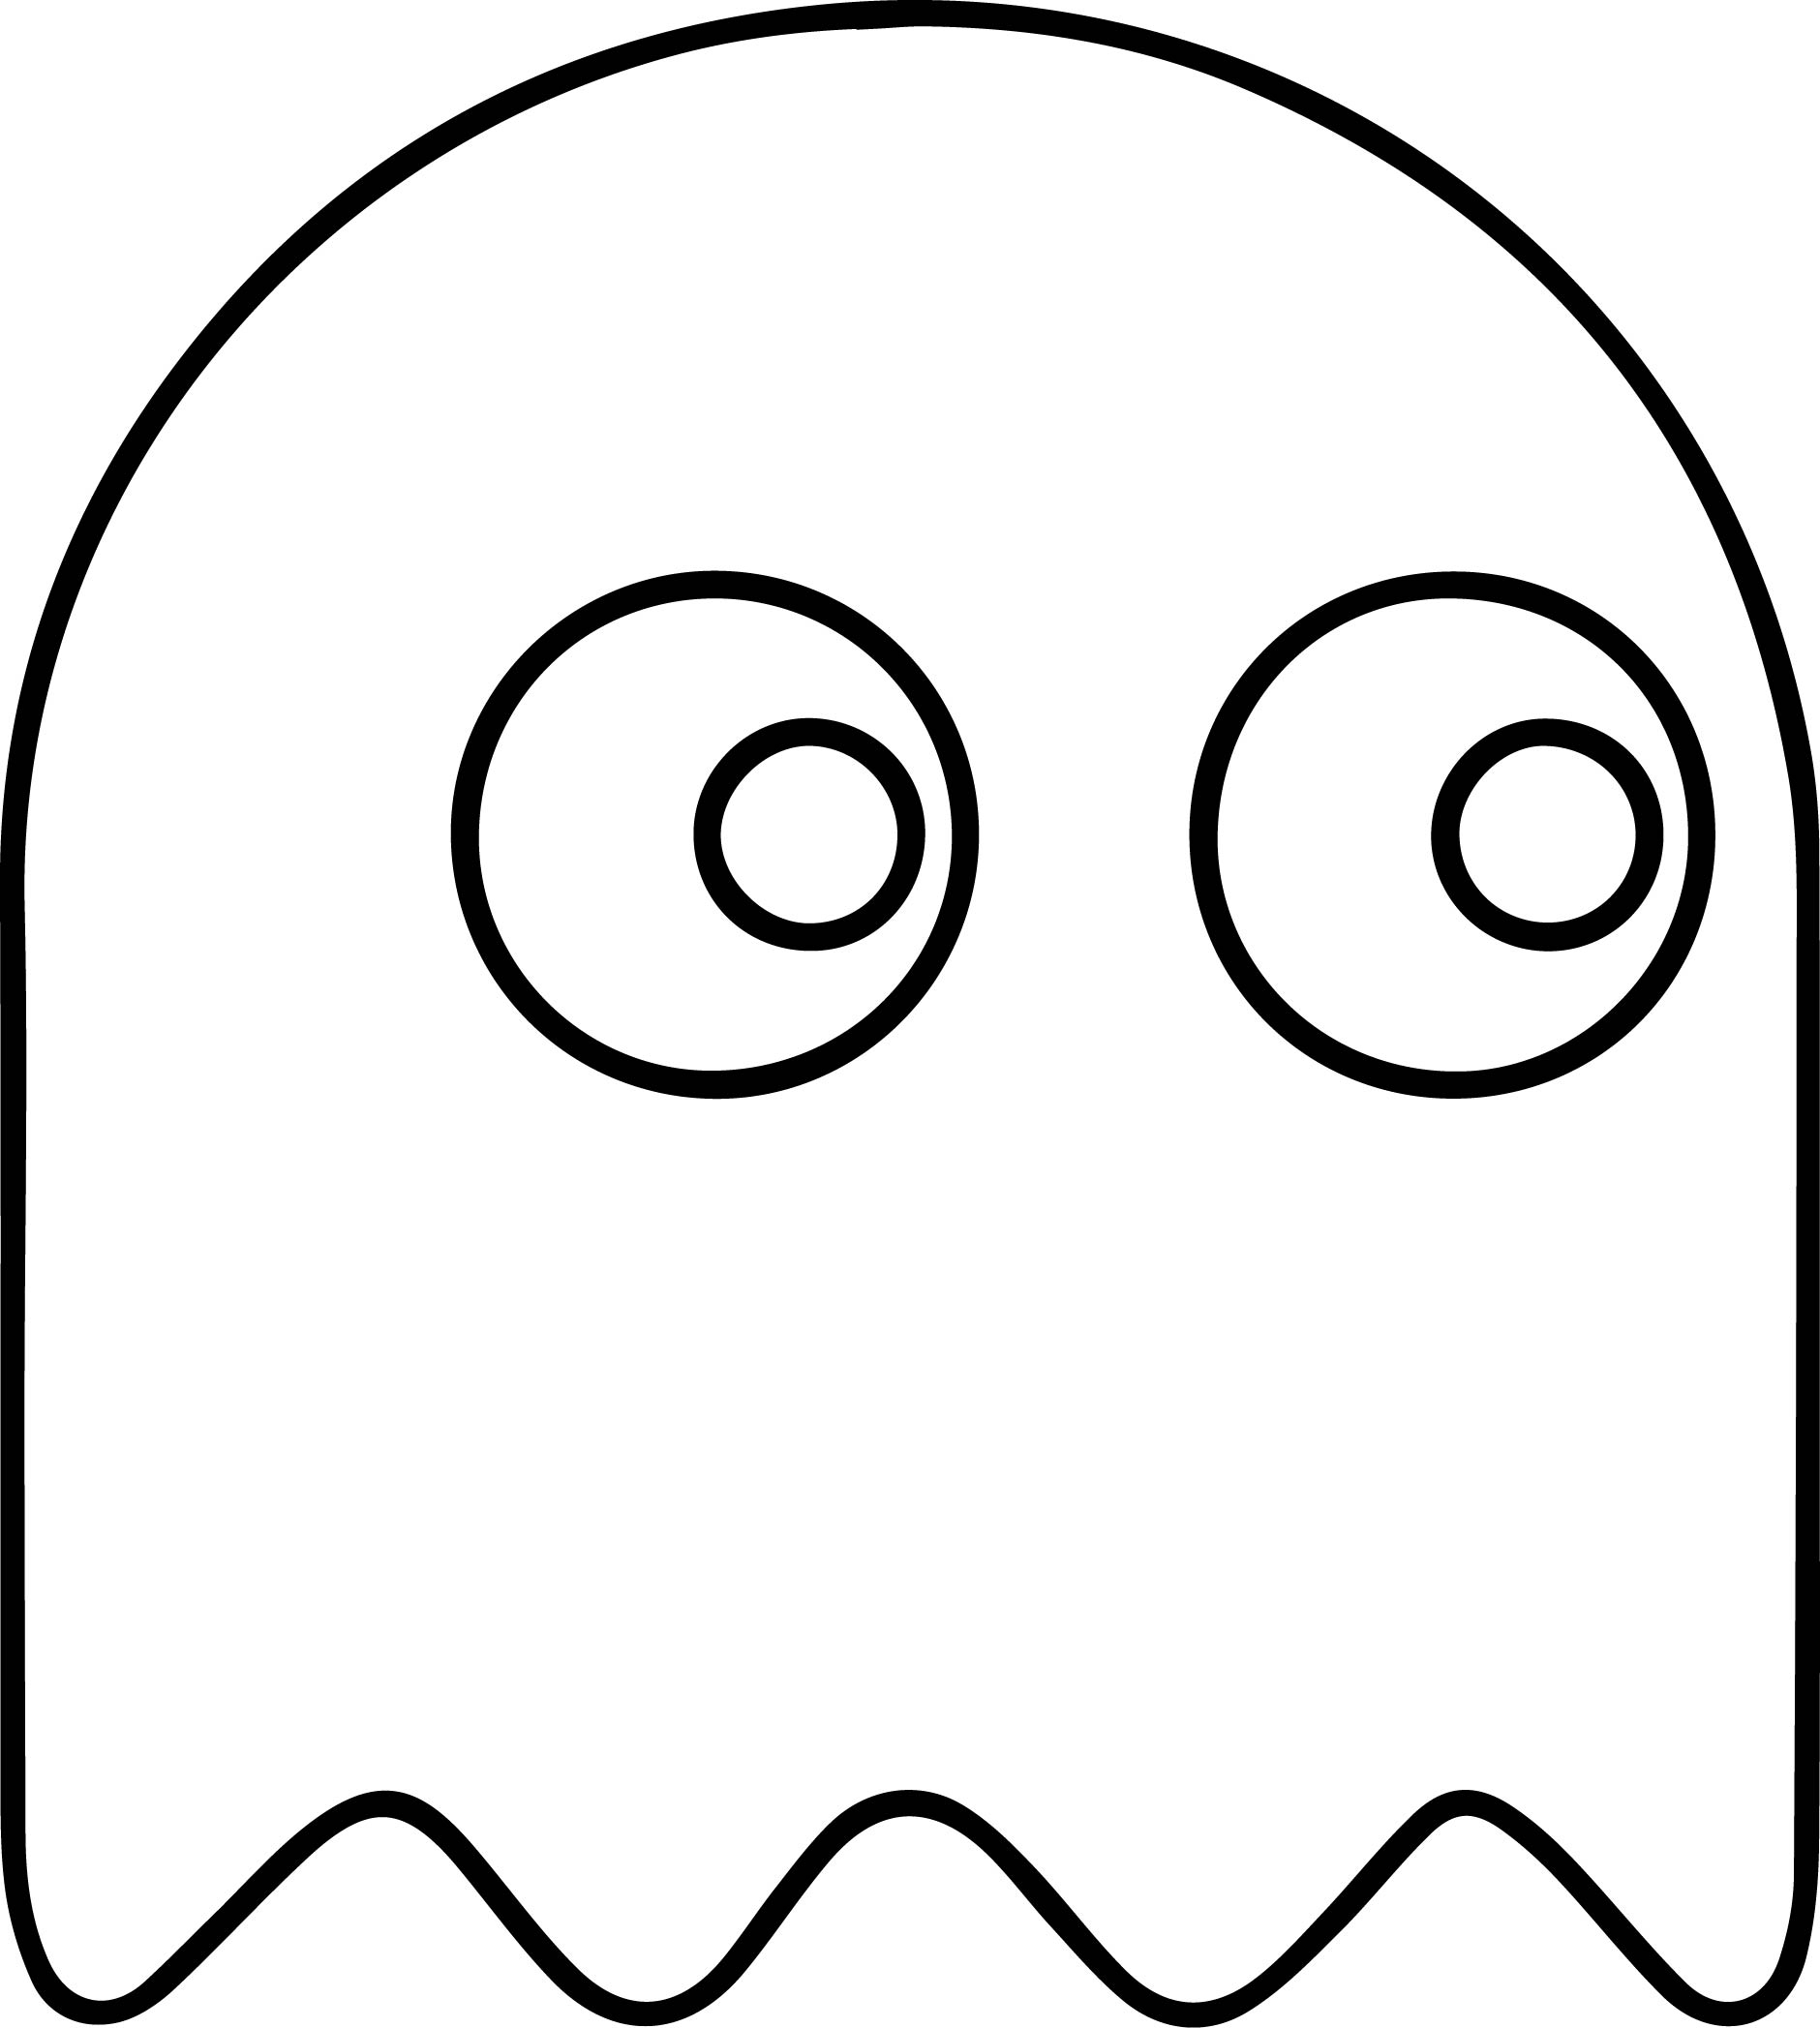 1880x2095 Unique Pac Man Fruit Coloring Pages Gallery Printable Coloring